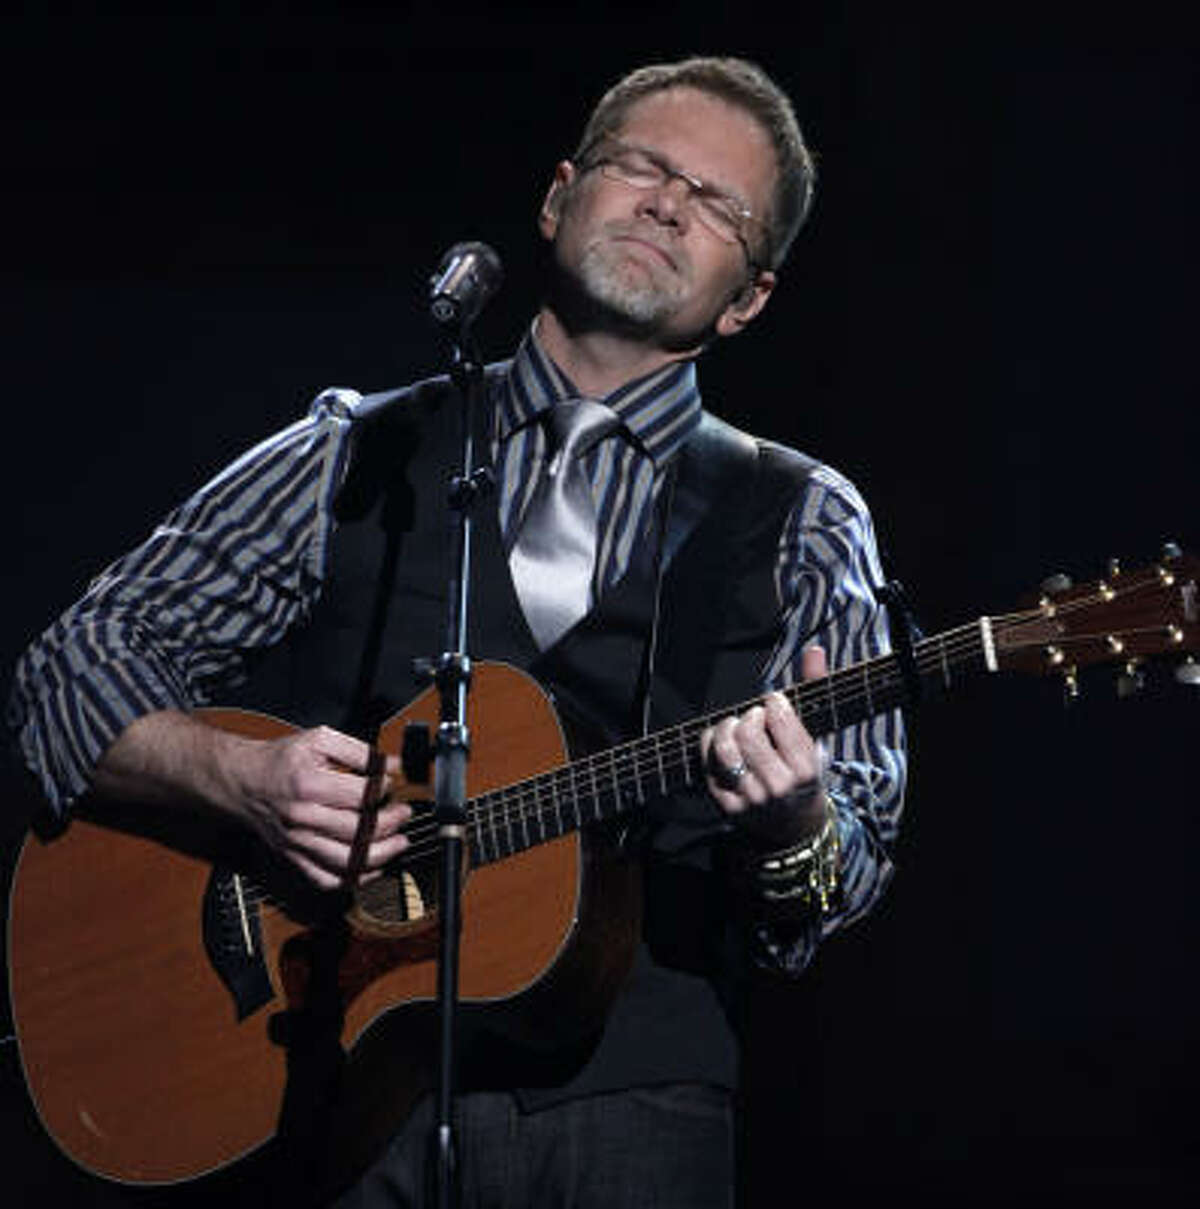 Steven Curtis Chapman performs at the Dove Awards in Nashville, Tenn., Thursday, April 23, 2009. Chapman won the award for artist of the year.